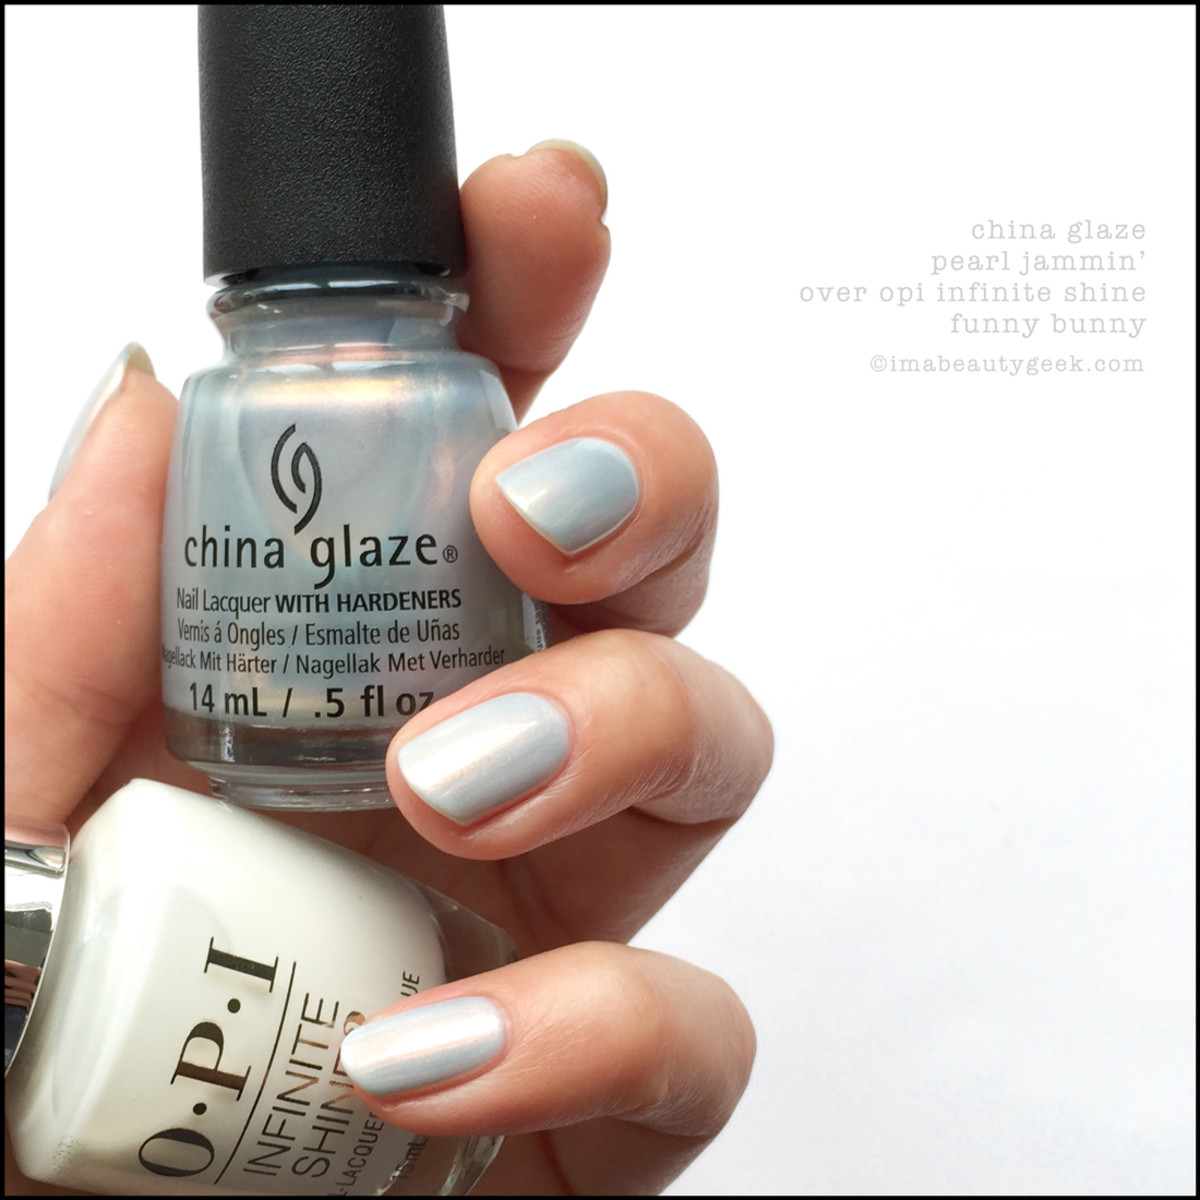 China Glaze Pearl Jammin over OPI IS Funny Bunny_China Glaze Rebel Collection Swatches Review